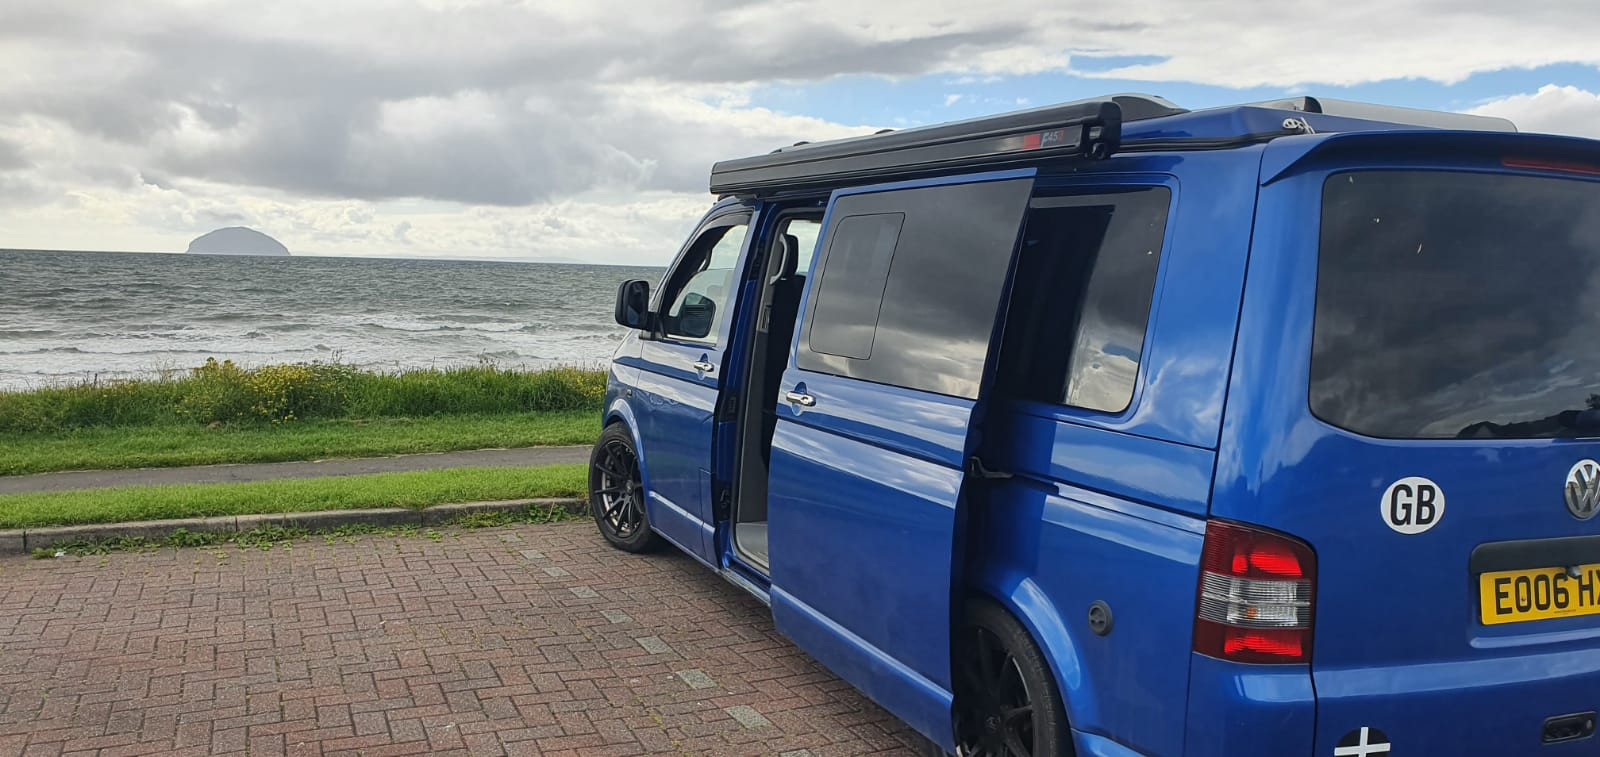 A VW T5 Campervan called Herve and for hire in gifford, East Lothian